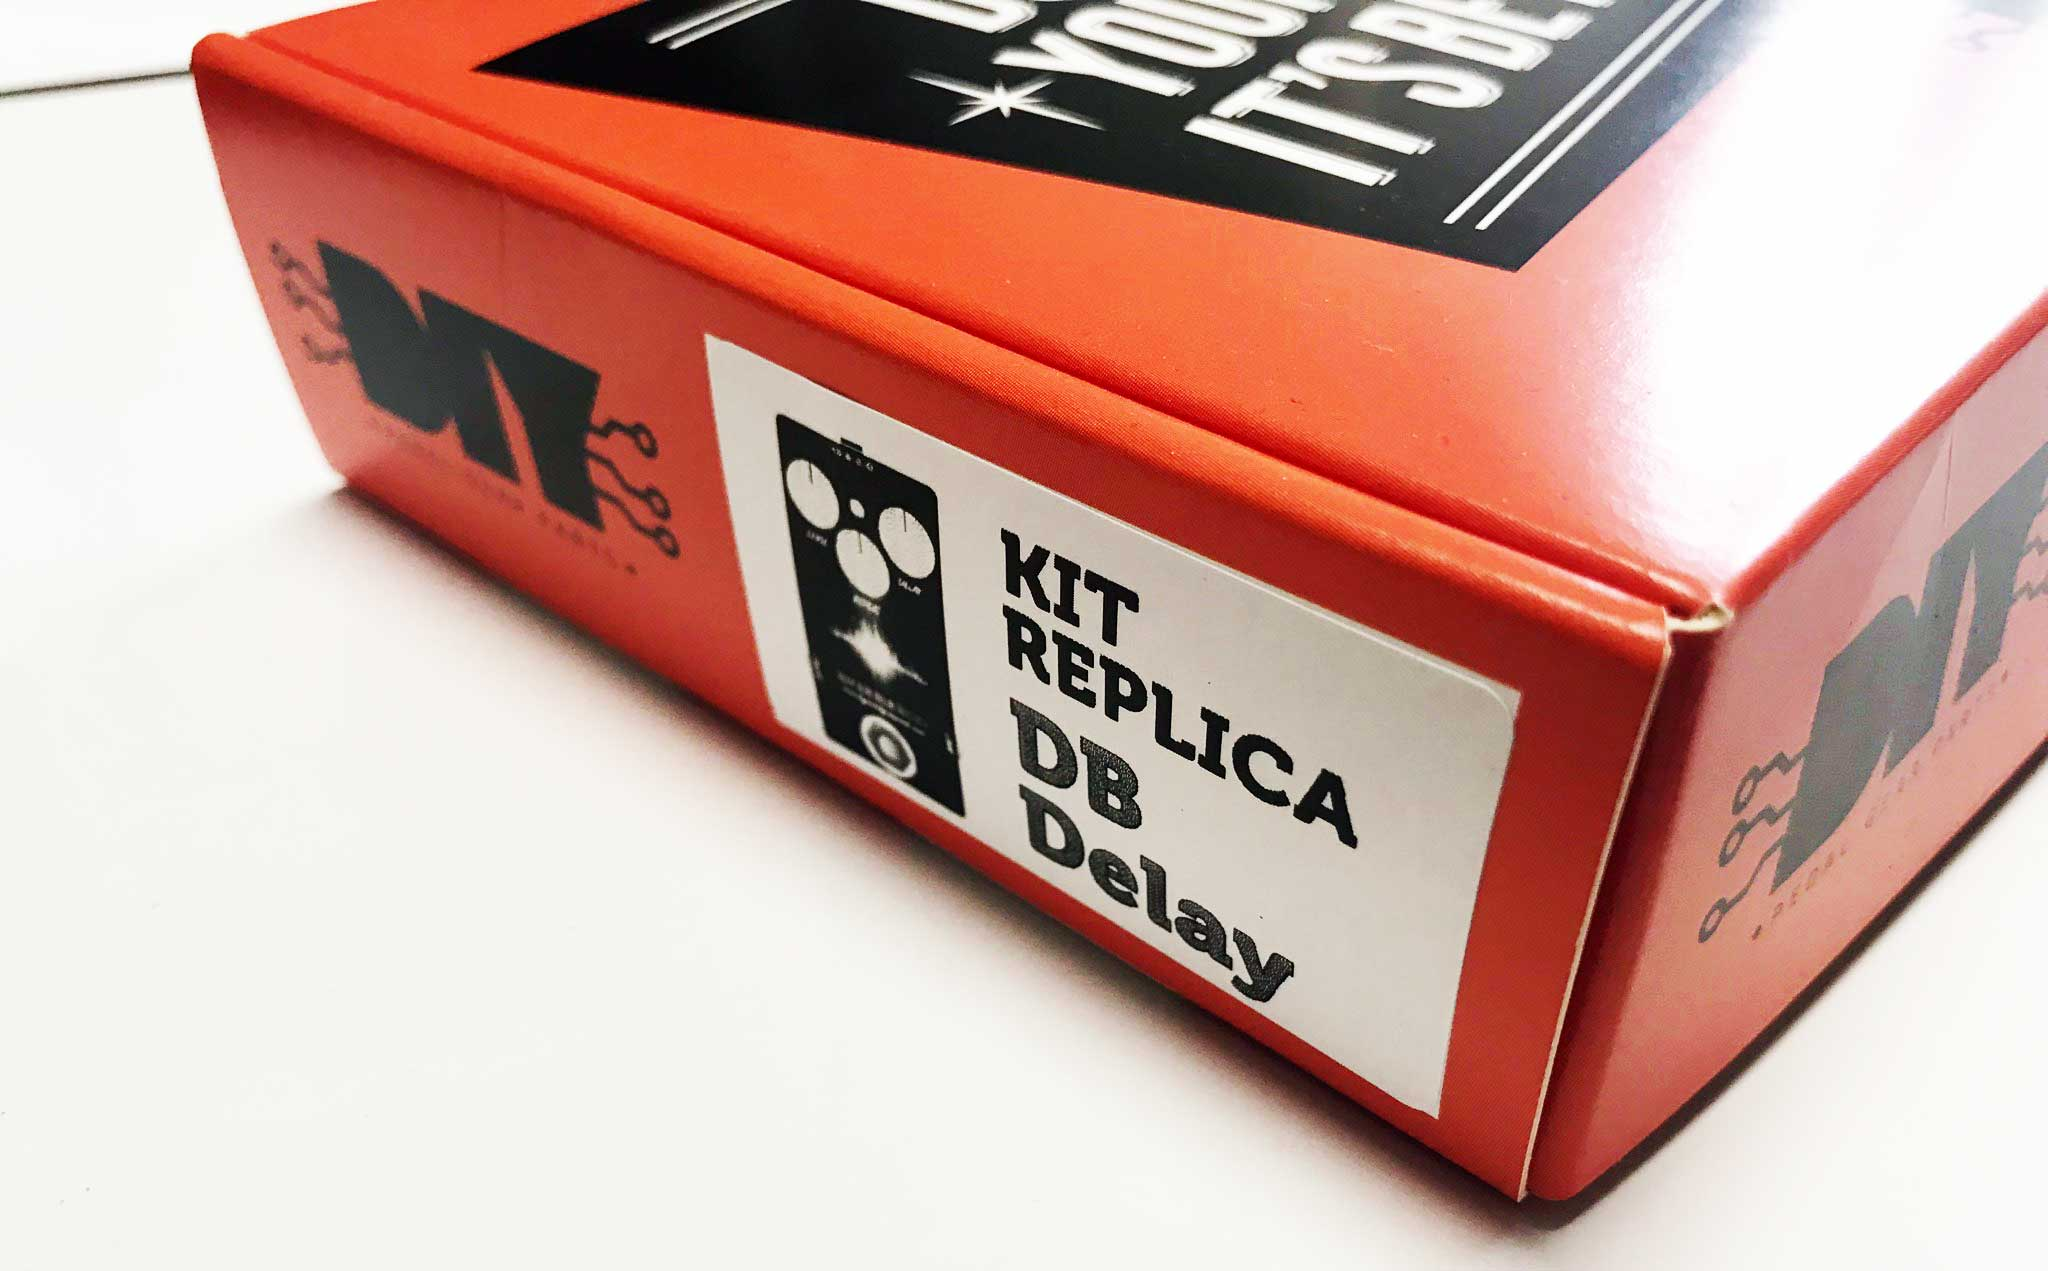 kit db delay scatola